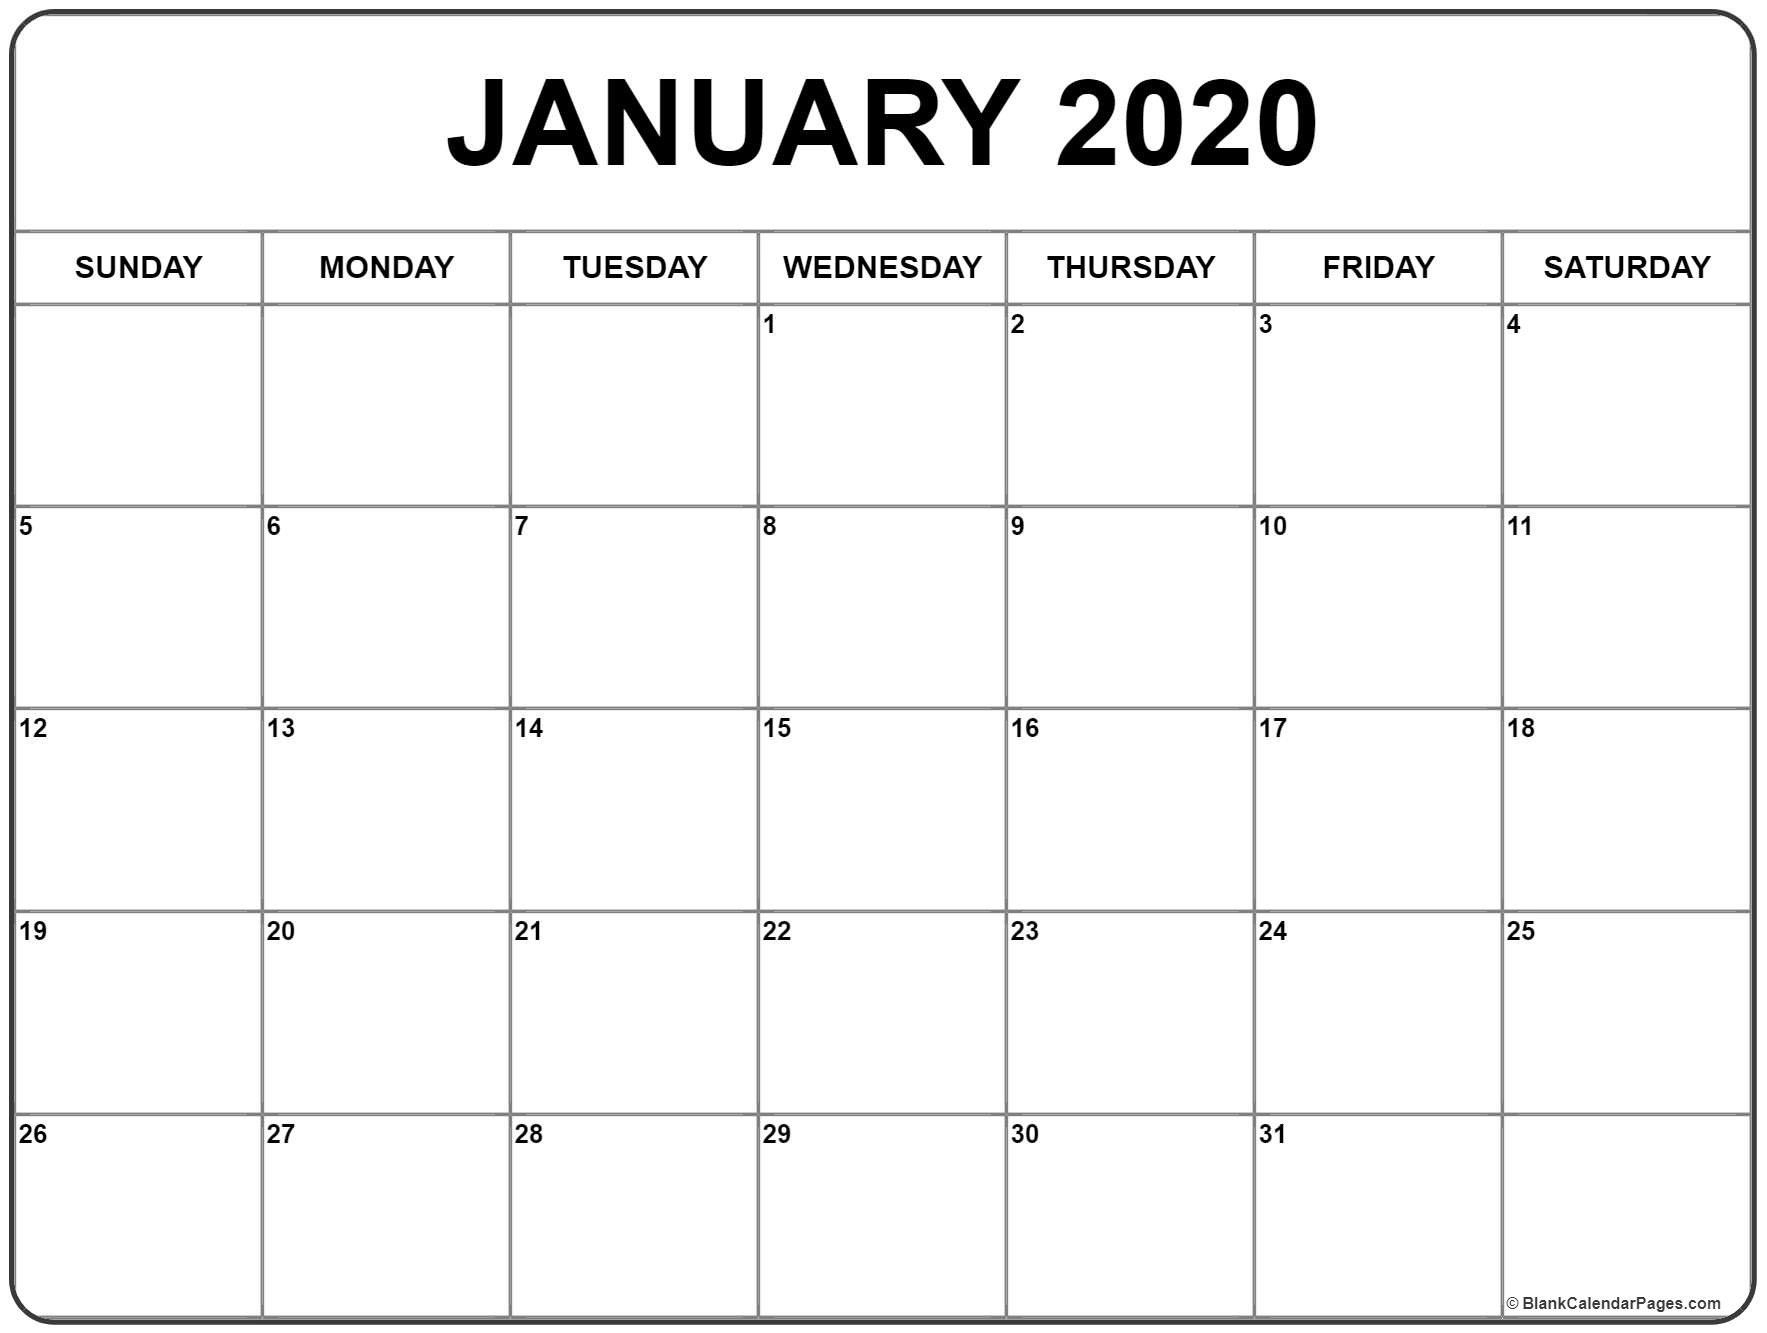 January 2020 Calendar 56 Templates Of 2020 Printable January within Legal Size Printable Monthly Calendar 2020